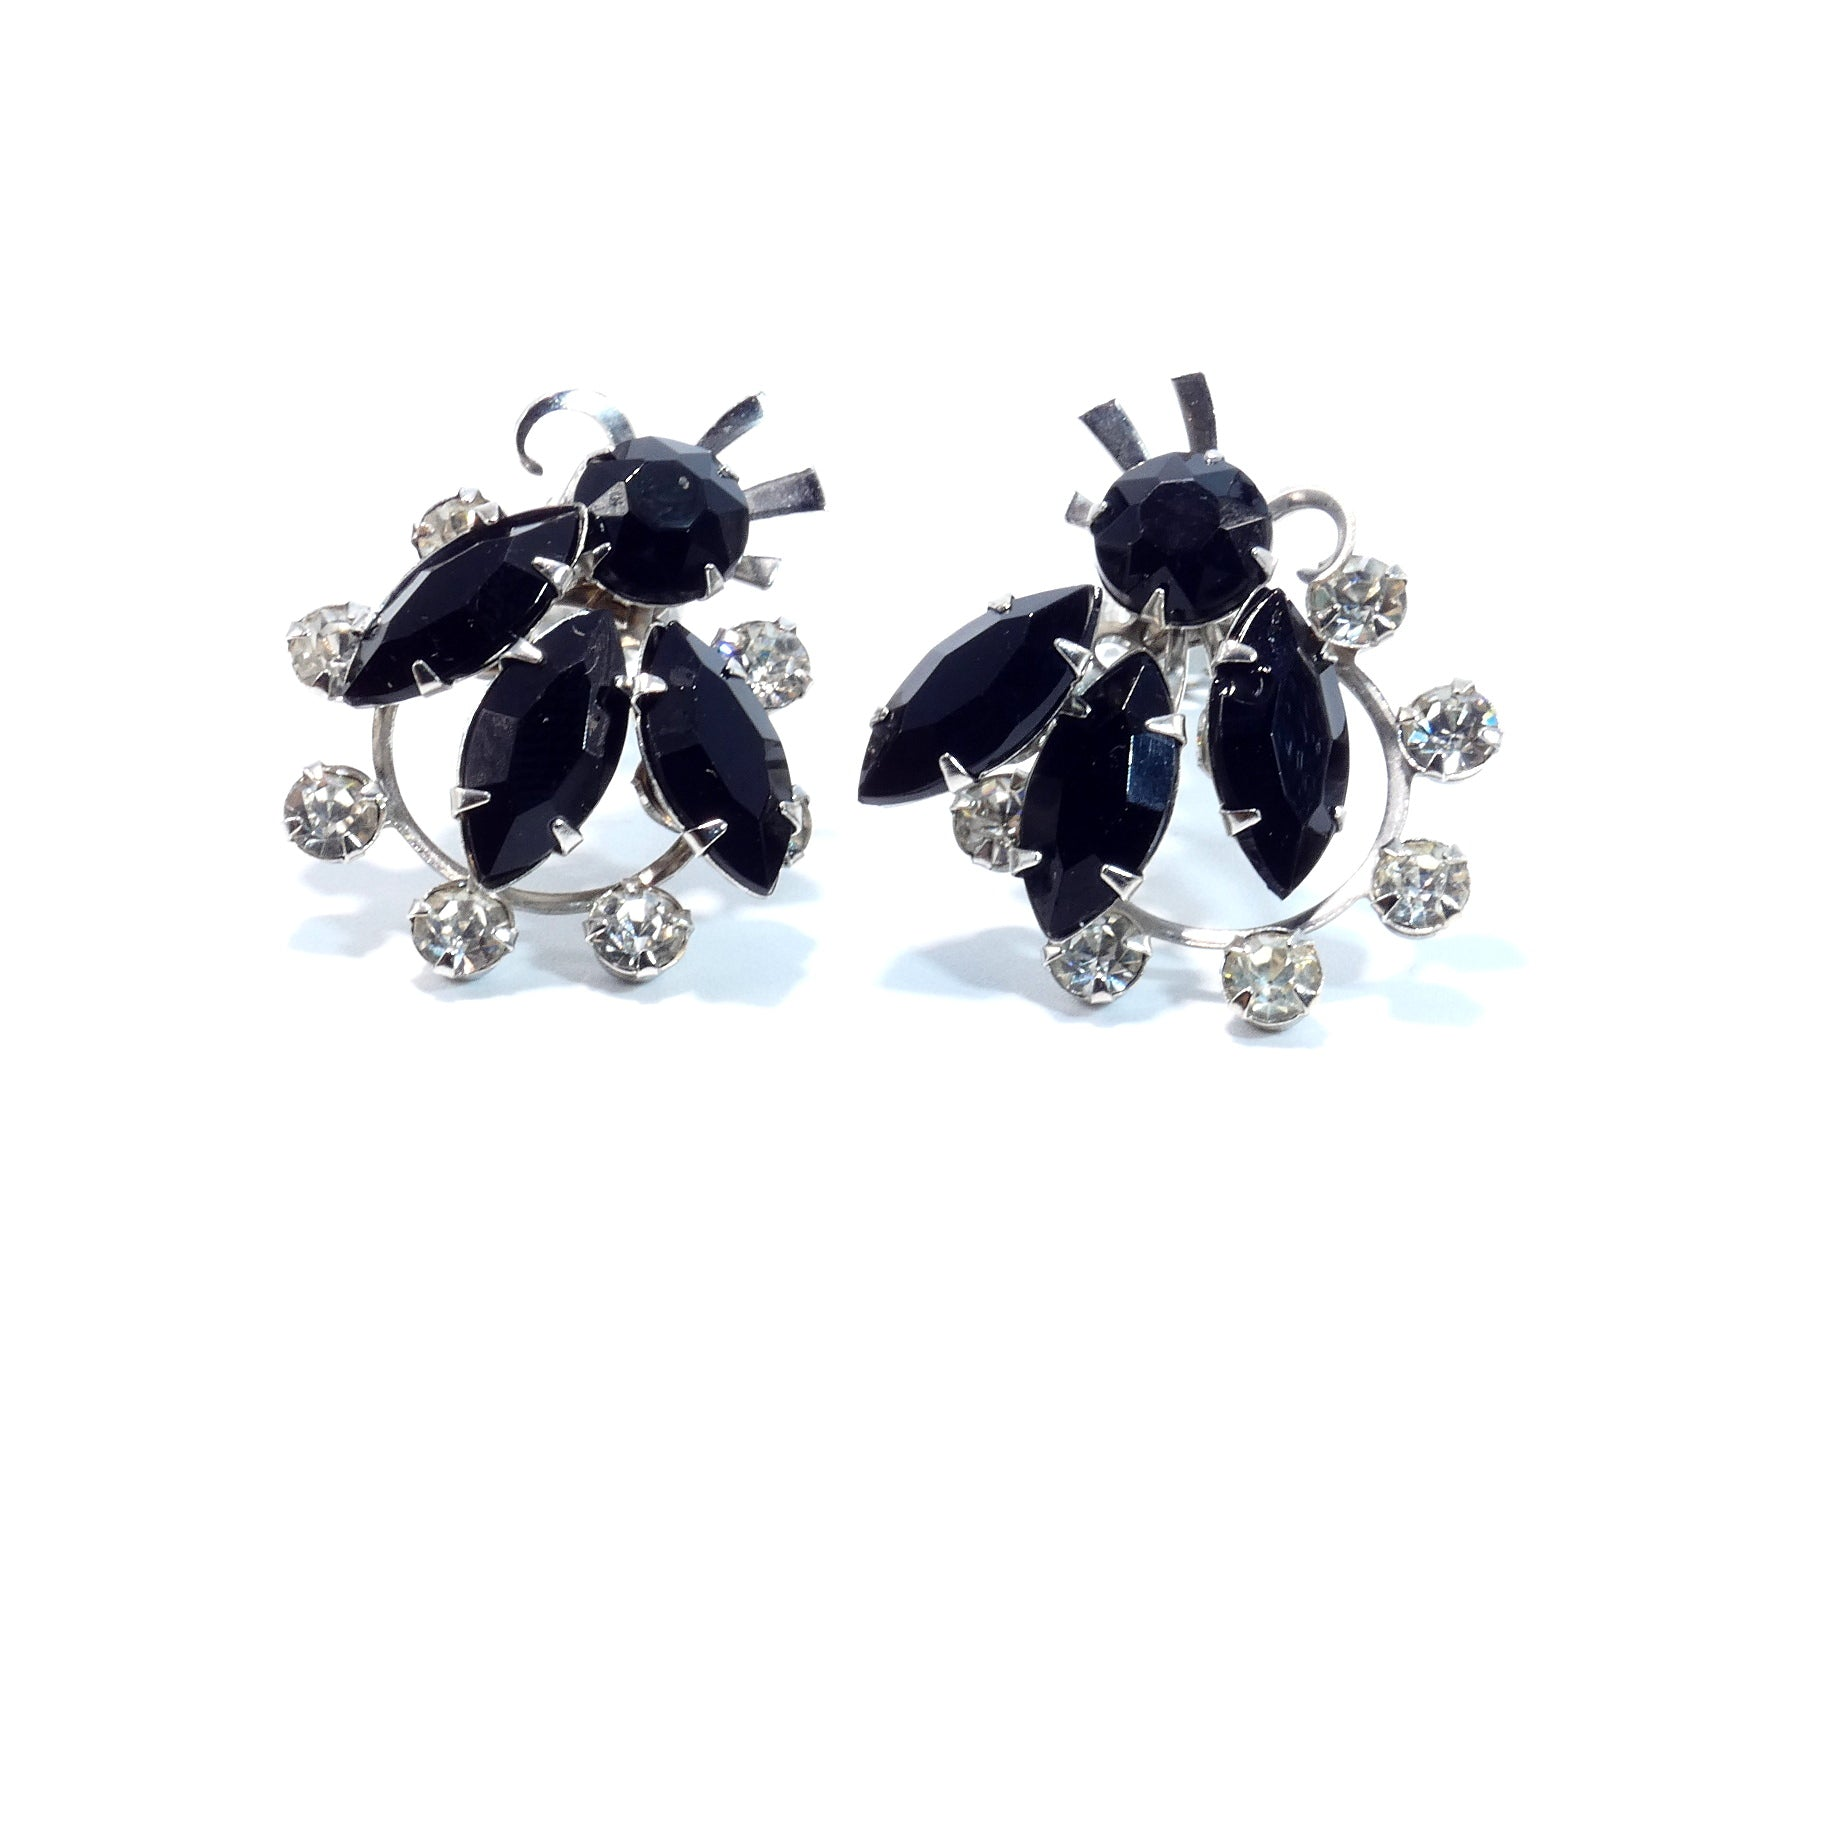 1950s Black Rhinestone Flower Design Clip-on Earrings